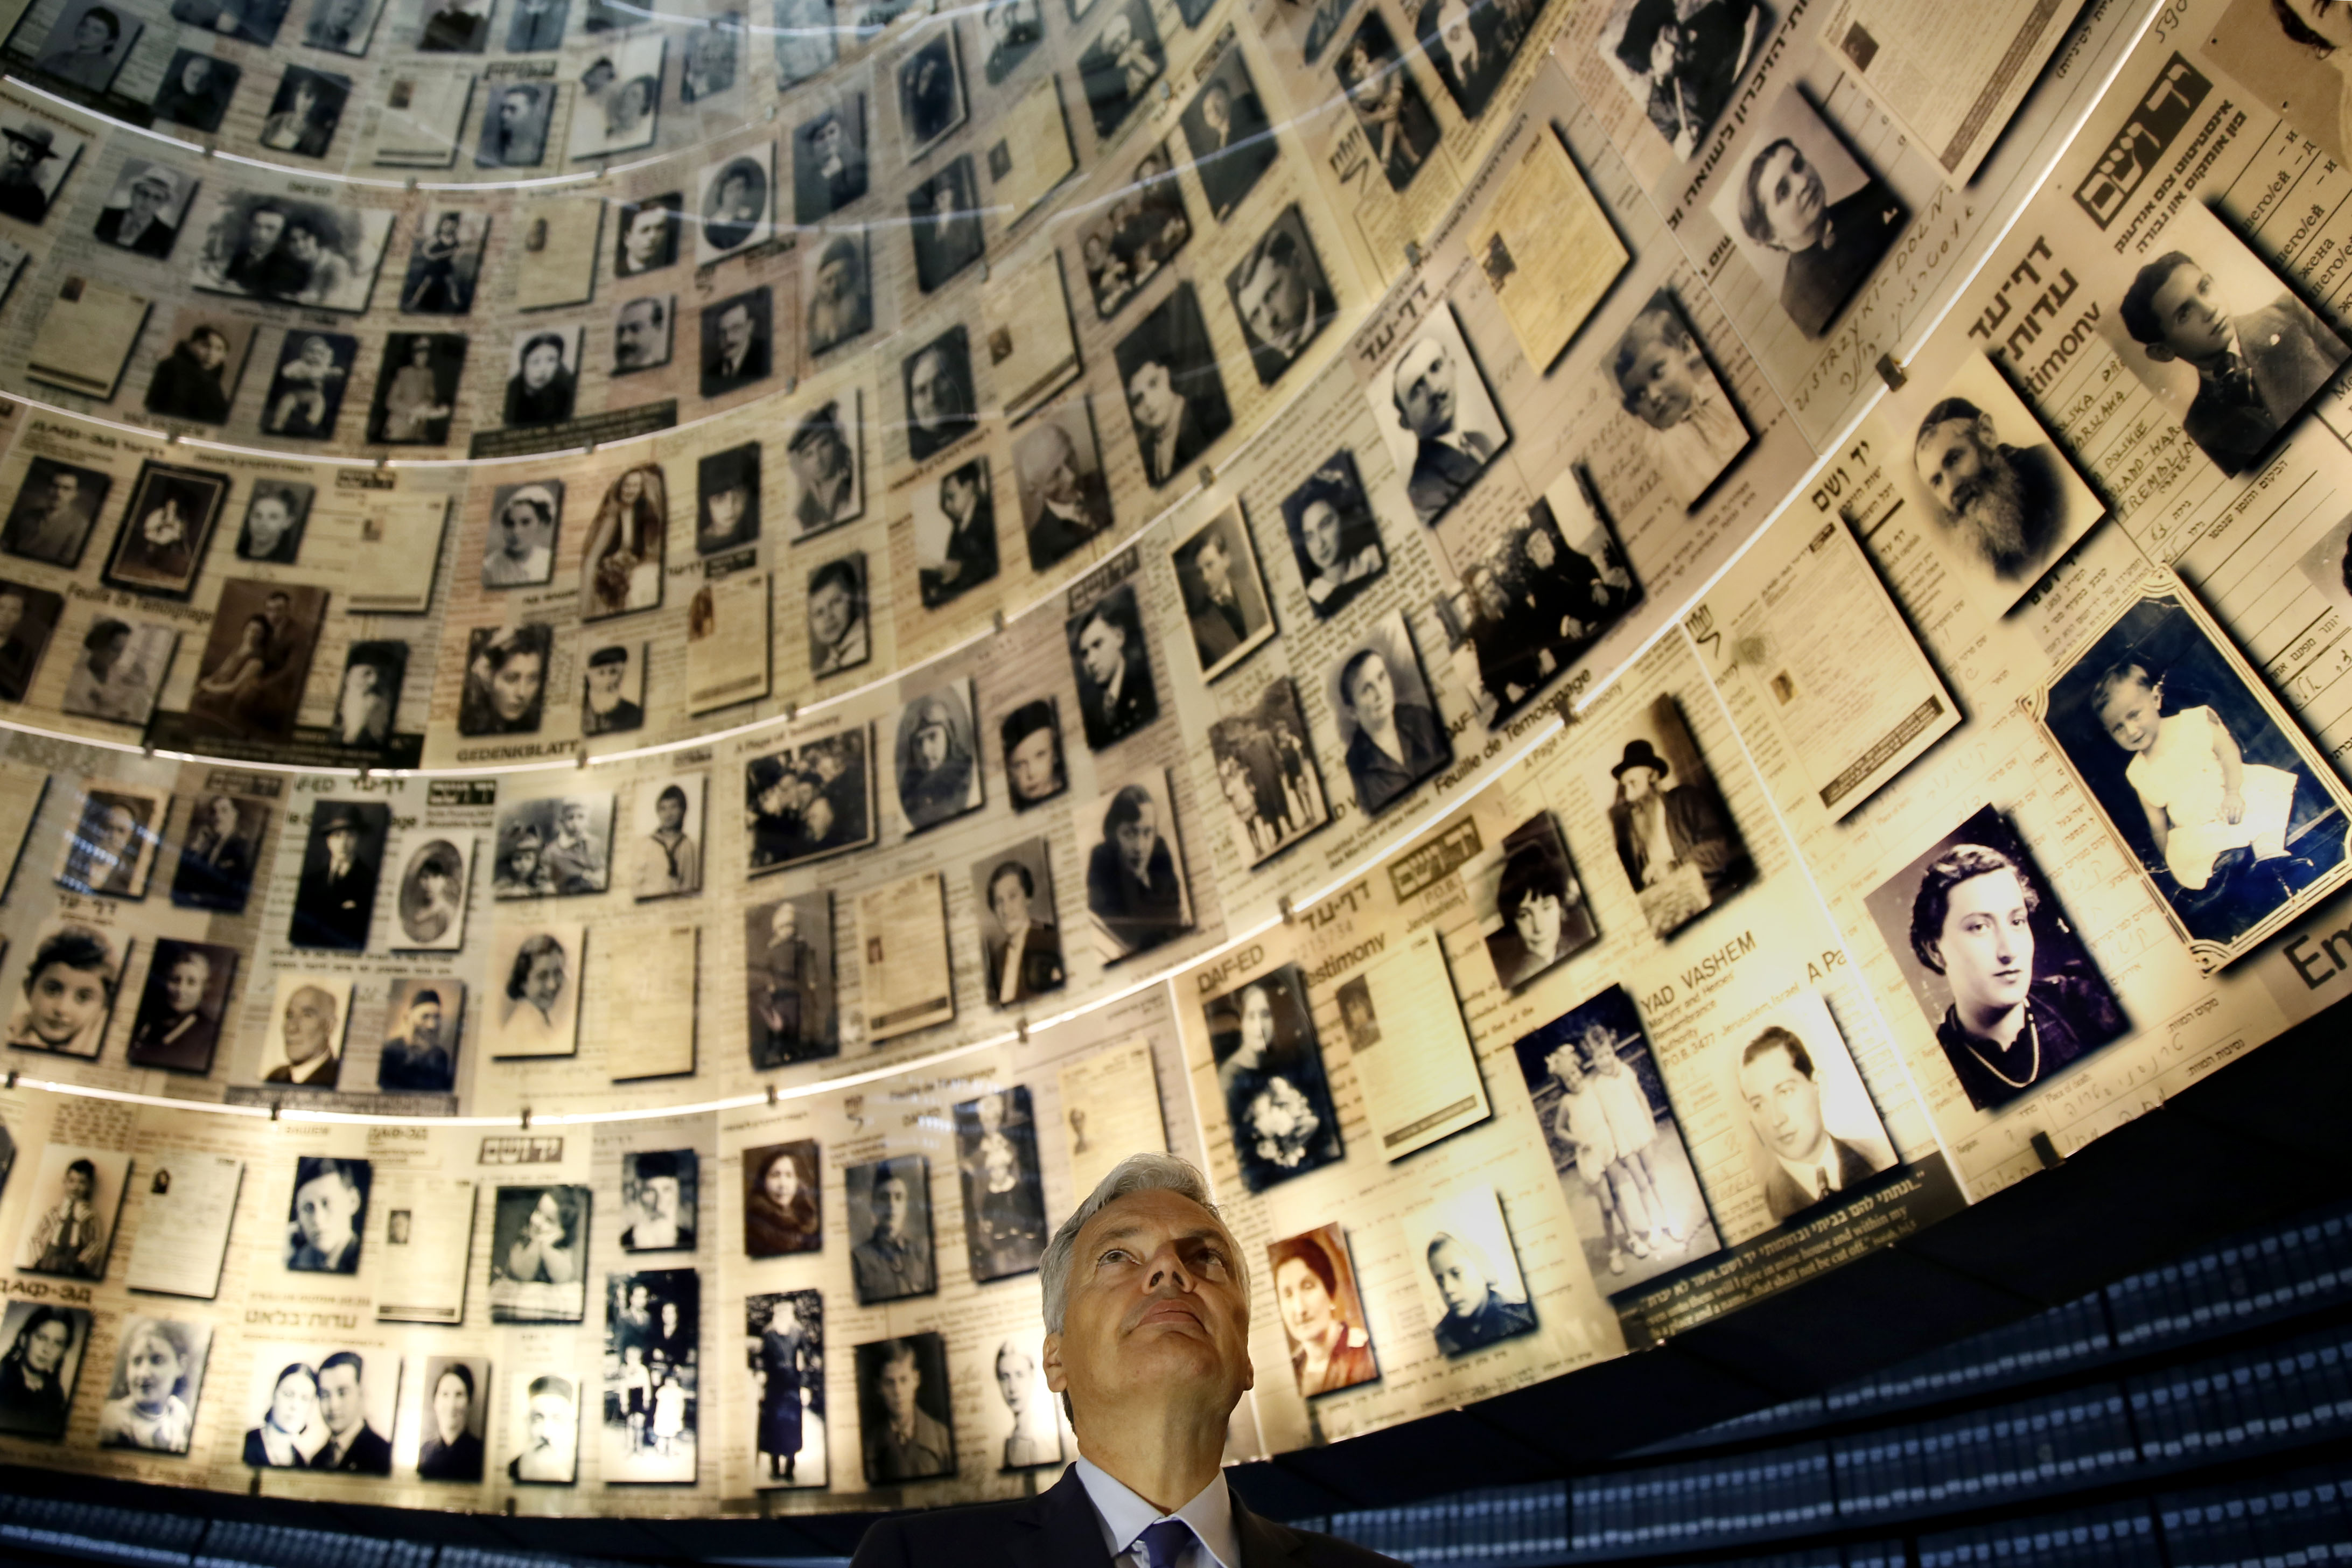 Belgian Foreign Minister Didier Reynders looks at pictures of Jewish Holocaust victims at the Hall of Names on November 12, 2013 during his visit to the Yad Vashem Holocaust Memorial museum in Jerusalem commemorating the six million Jews killed by the Nazis during World War II. (GALI TIBBON/AFP/Getty Images)